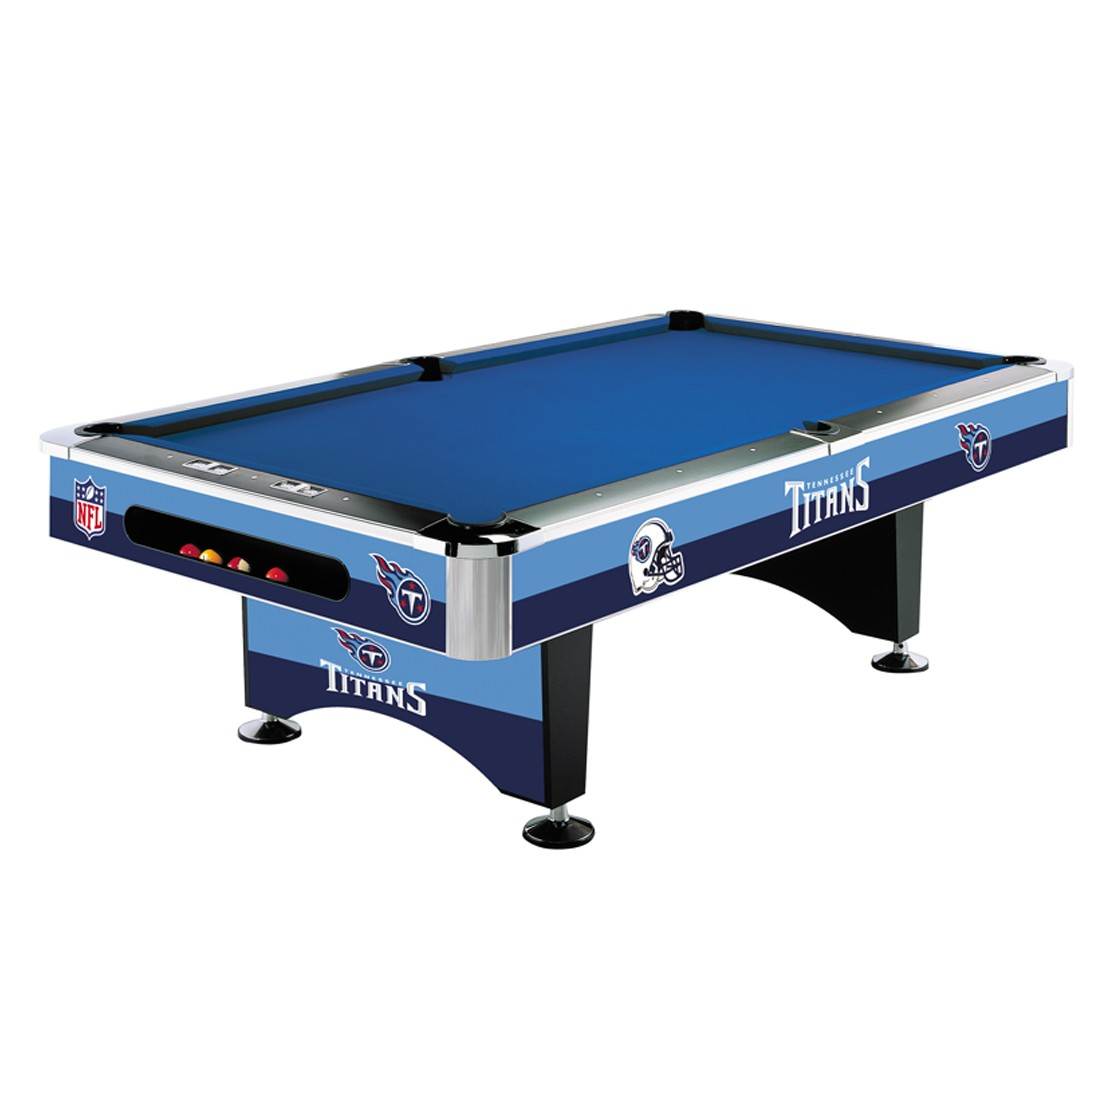 TENNESSEE TITANS 8-FT. POOL TABLE